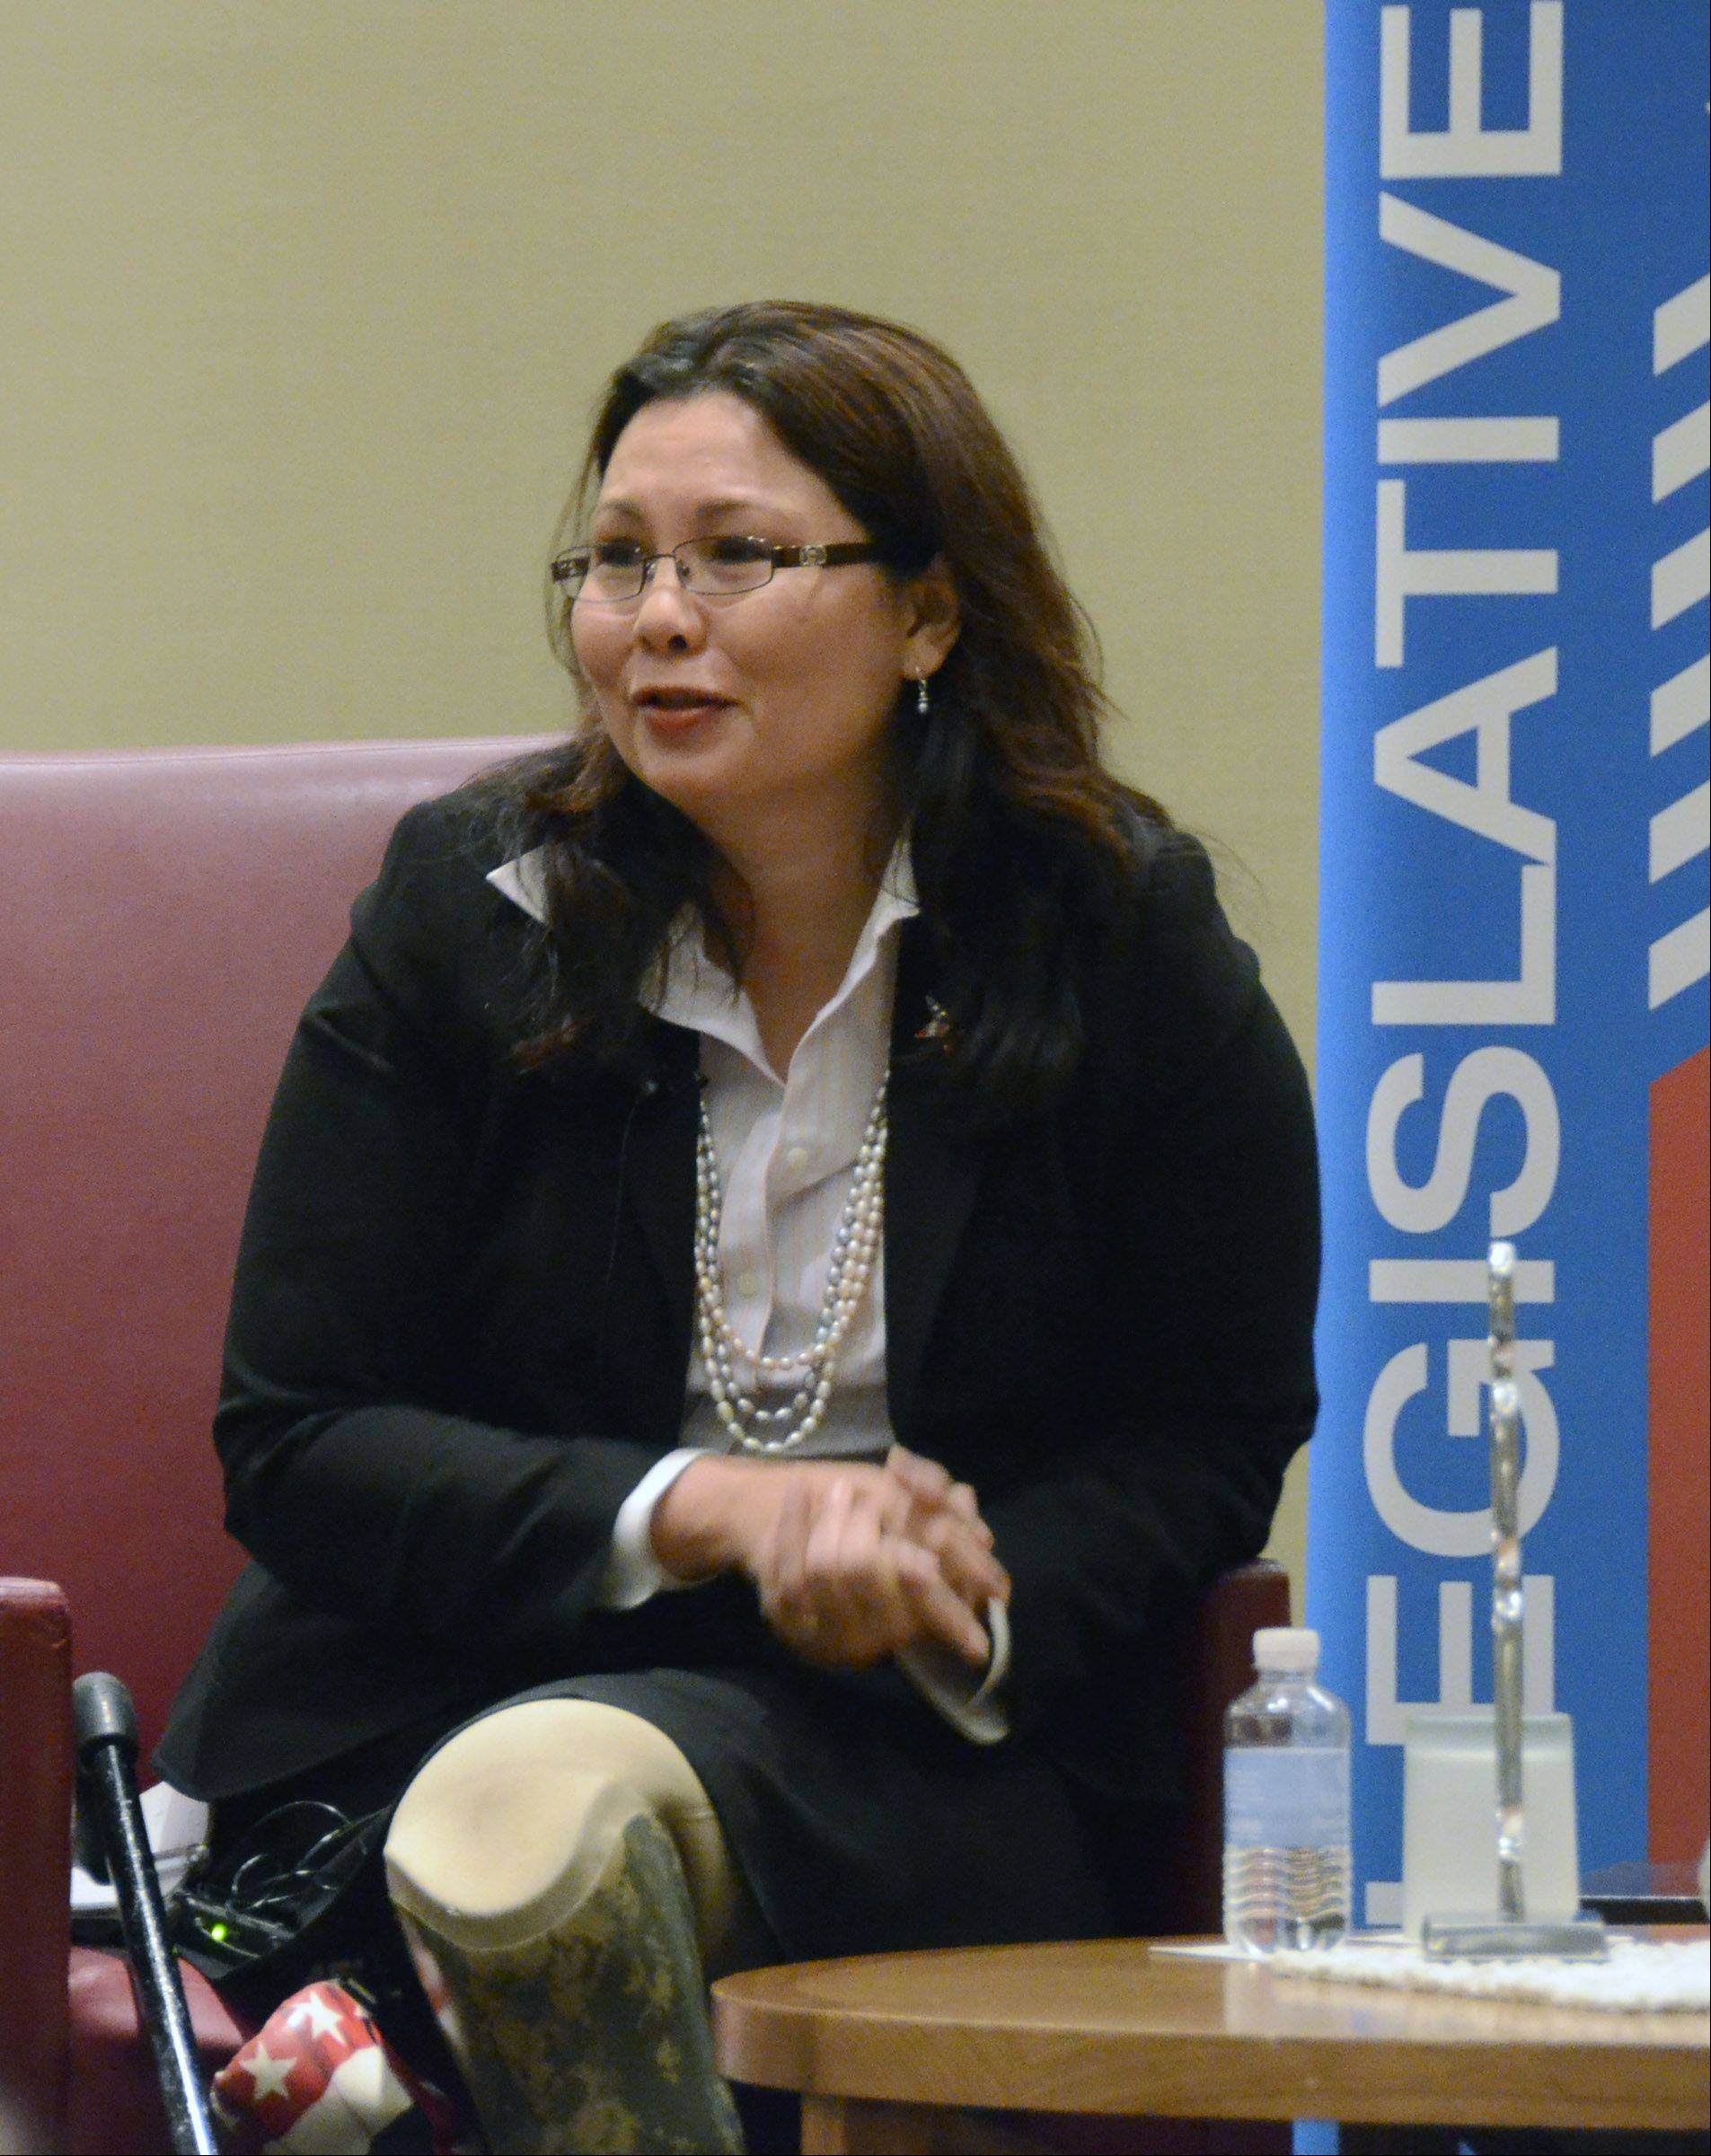 Tammy Duckworth of Hoffman Estates, Democratic challenger to Republican Congressman Joe Walsh of McHenry, speaks at a Schaumburg Business Association breakfast meeting Monday in Schaumburg.